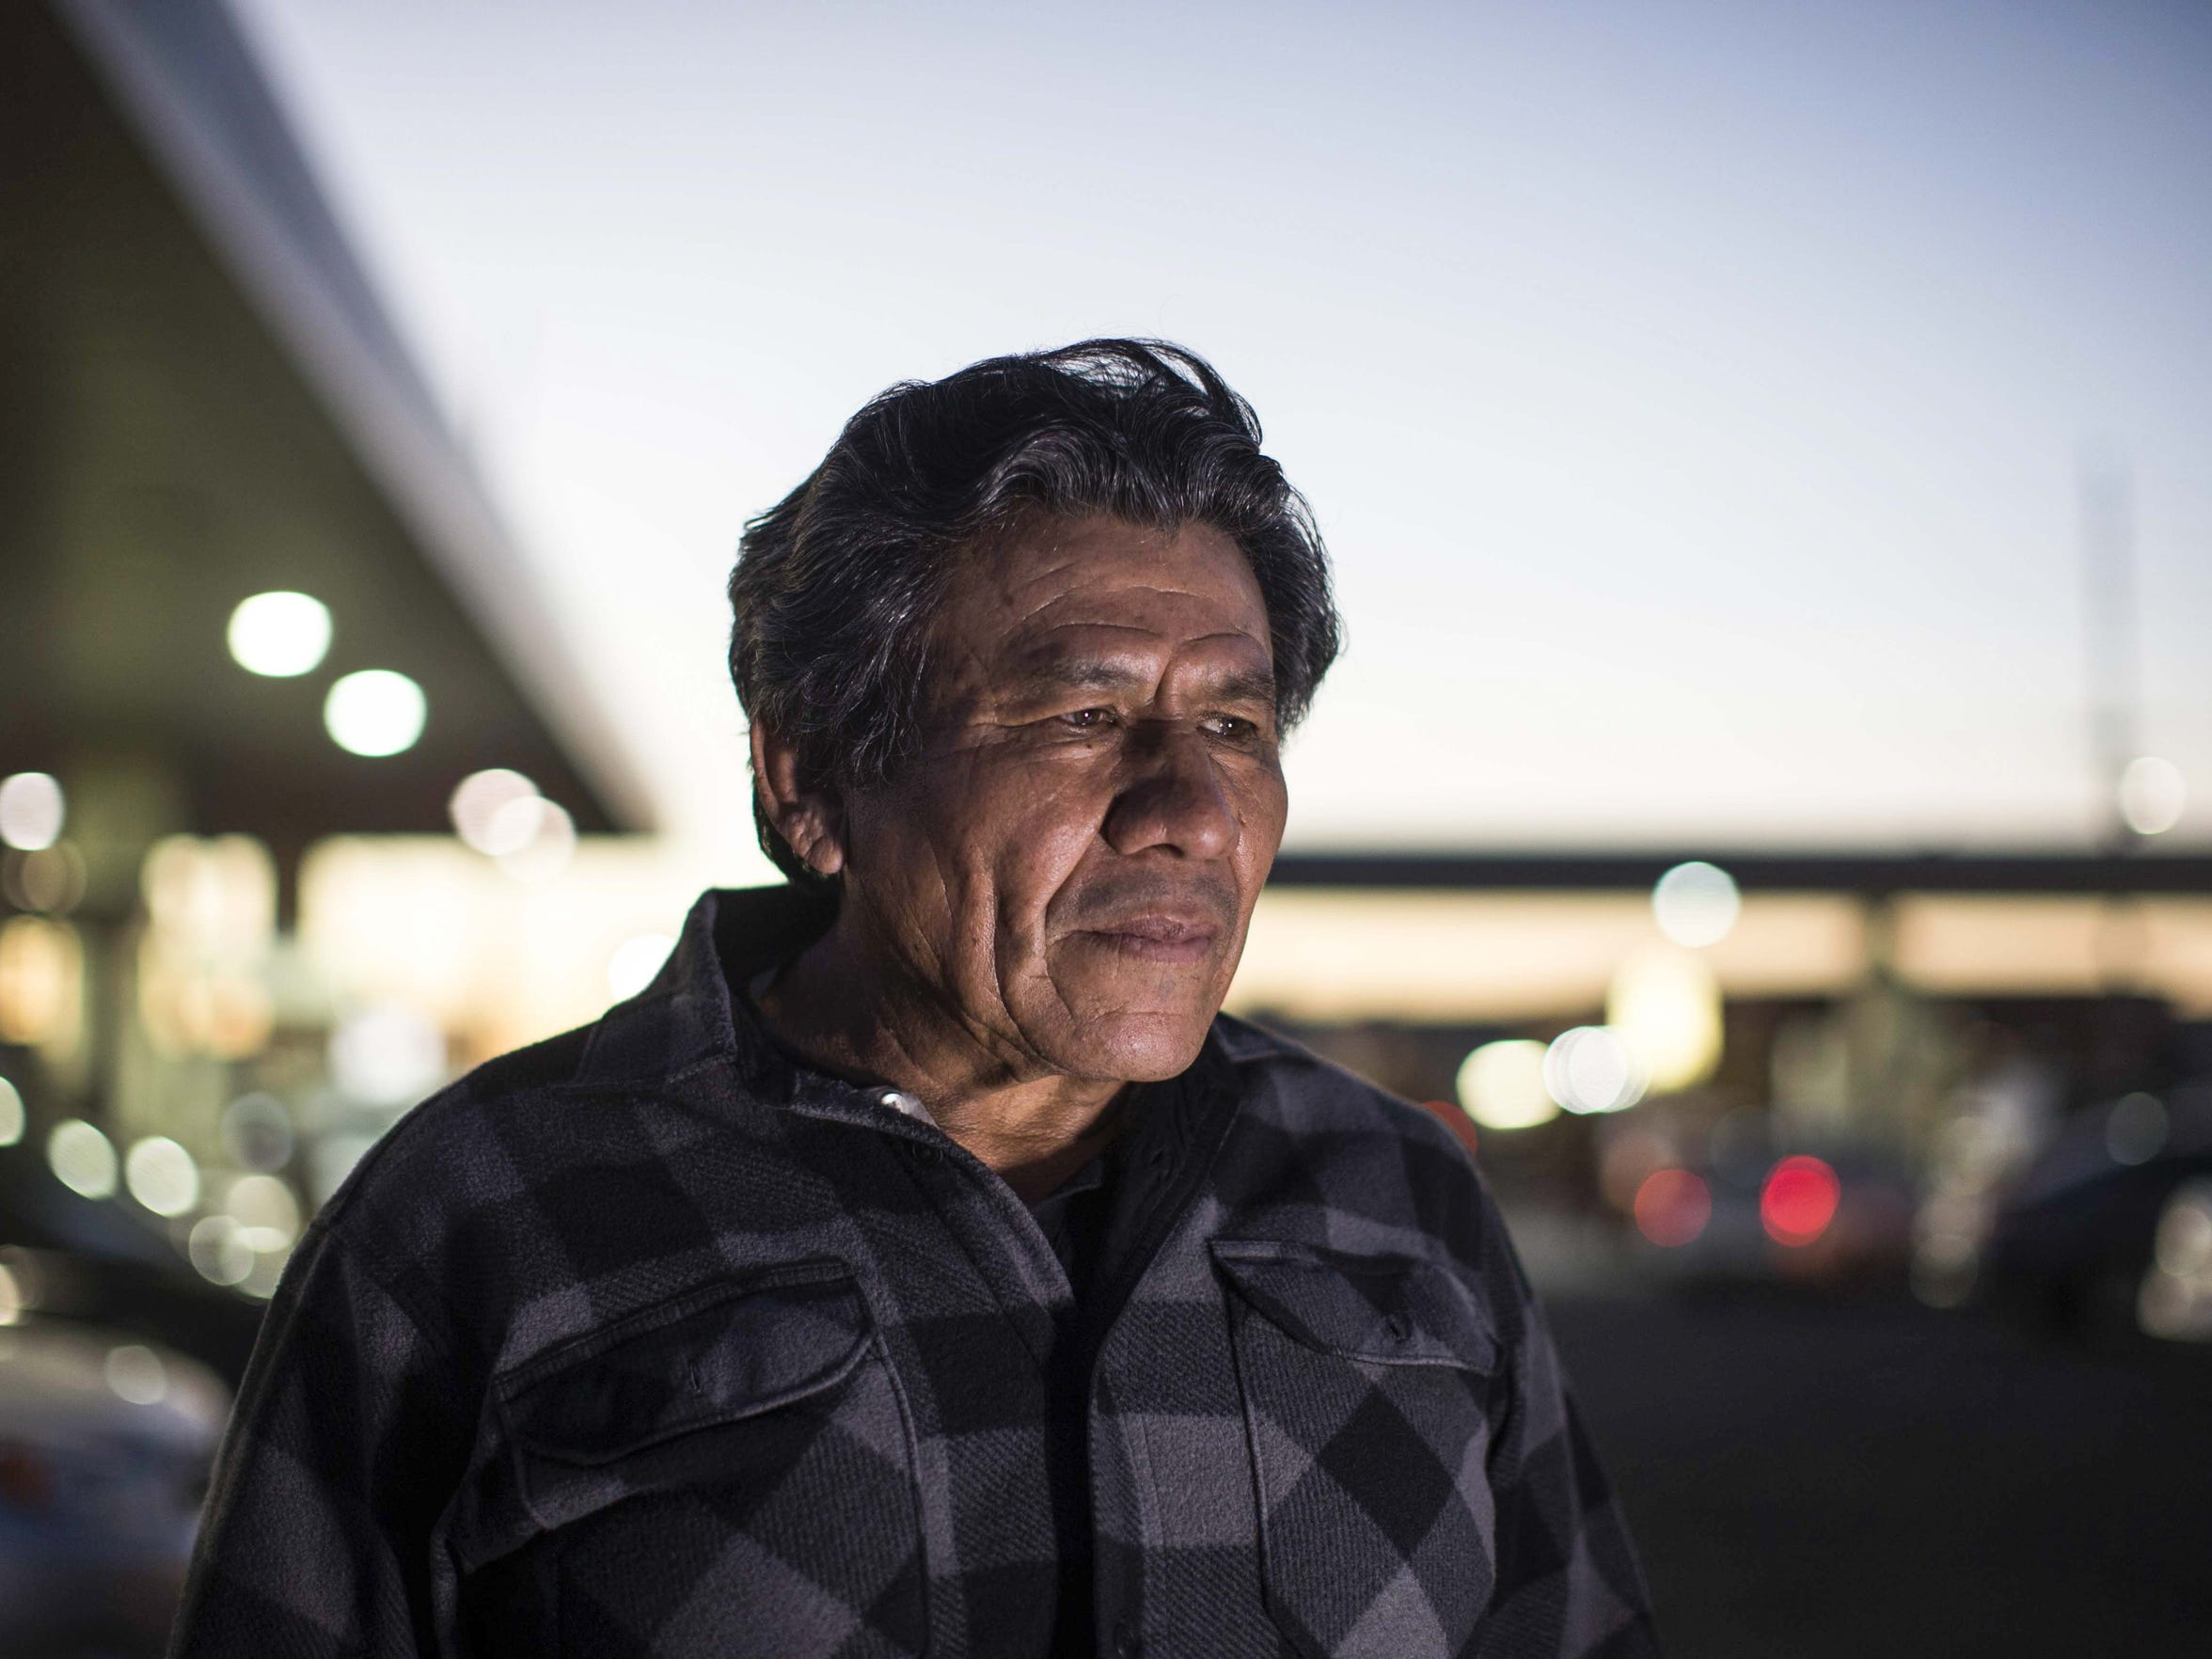 Manuel de Jesus Ortega Melendres was arrested in 2007 by the Maricopa County Sheriff's Office. His arrest and detentions sparked the high-profile racial-profiling lawsuit against Sheriff Joe Arpaio.